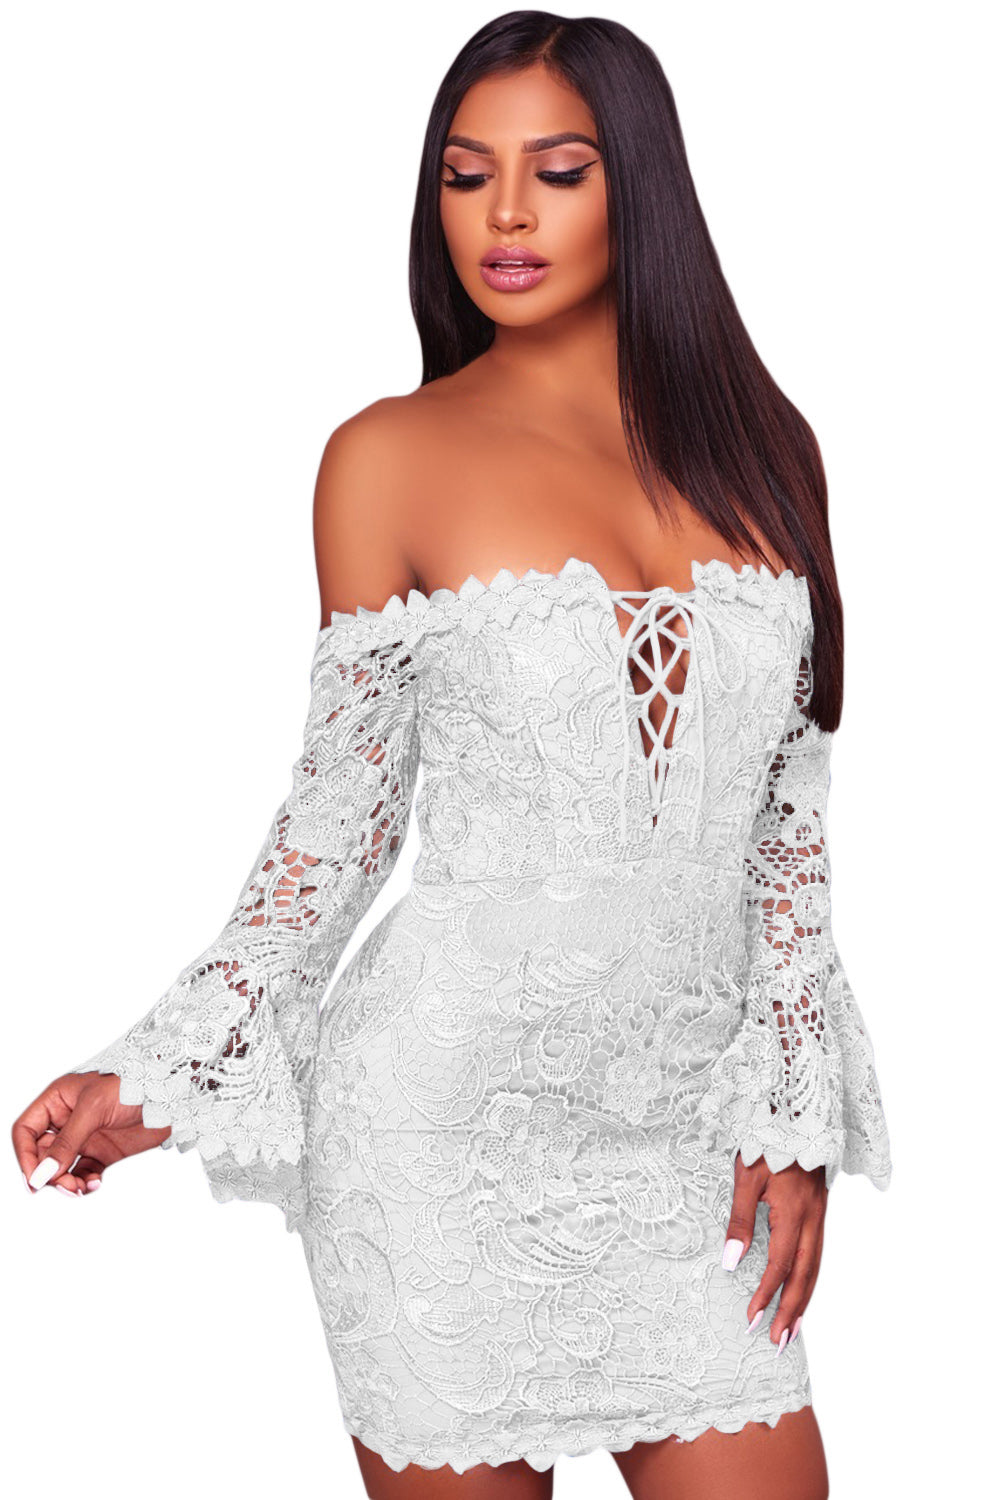 Her Fashion Blue Crochet Overlay Off The Shoulder Fitted Mini Dress